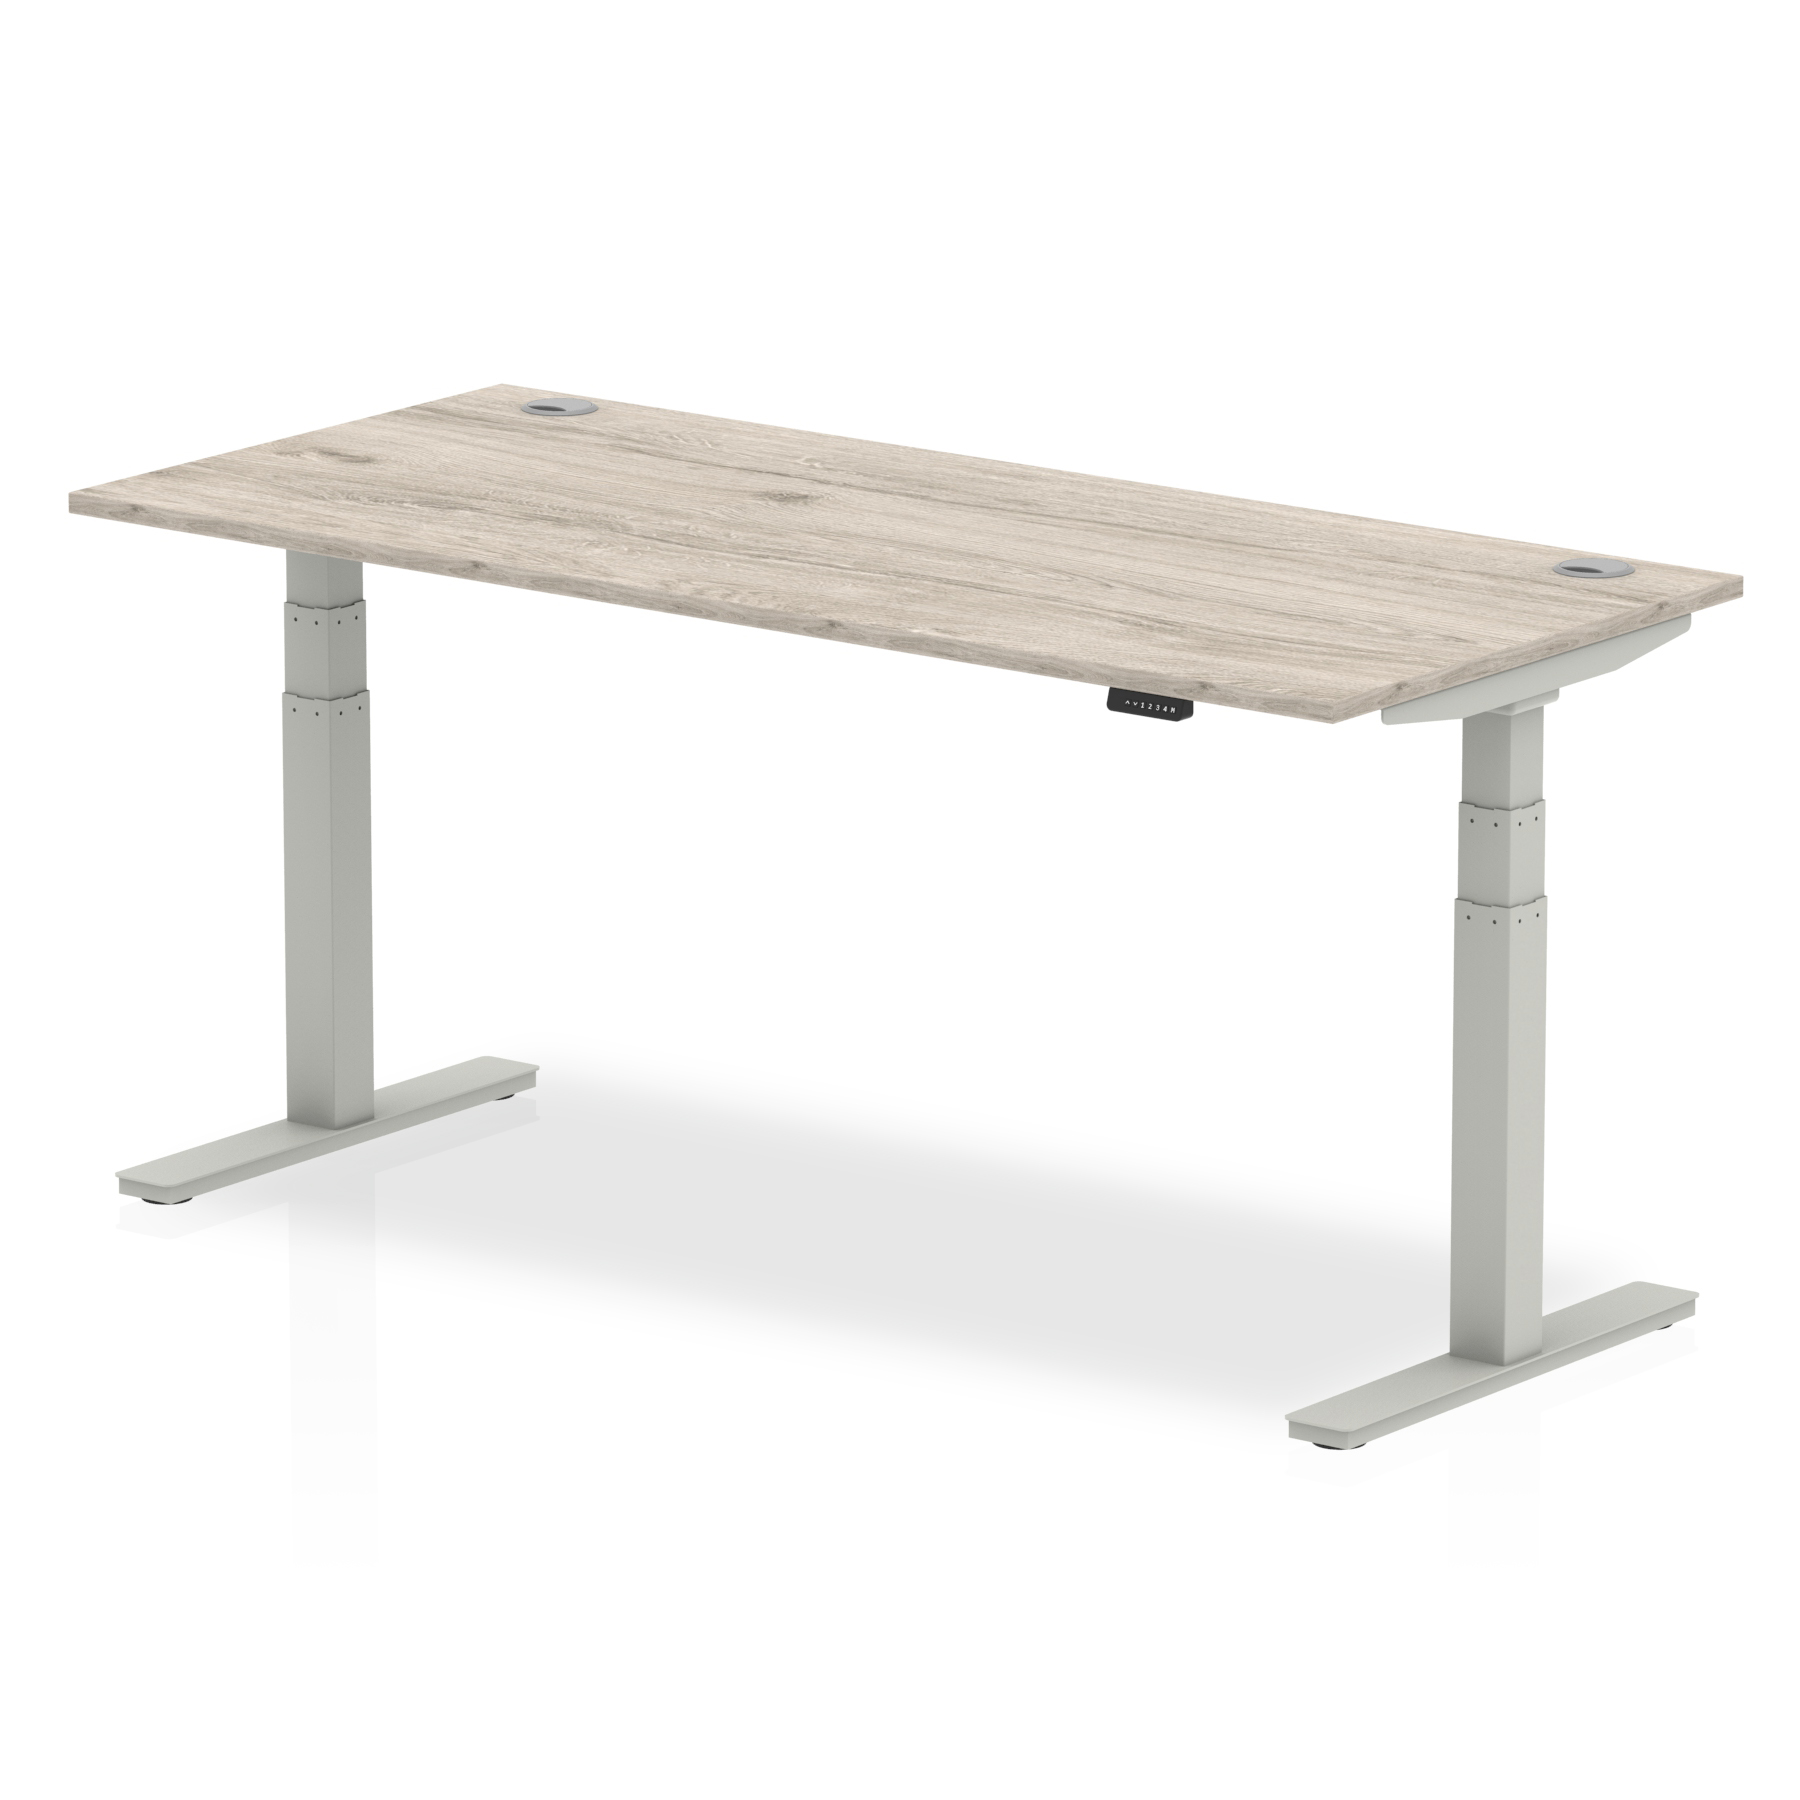 Trexus Sit Stand Desk With Cable Ports Silver Legs 1800x800mm Grey Oak Ref HA01175